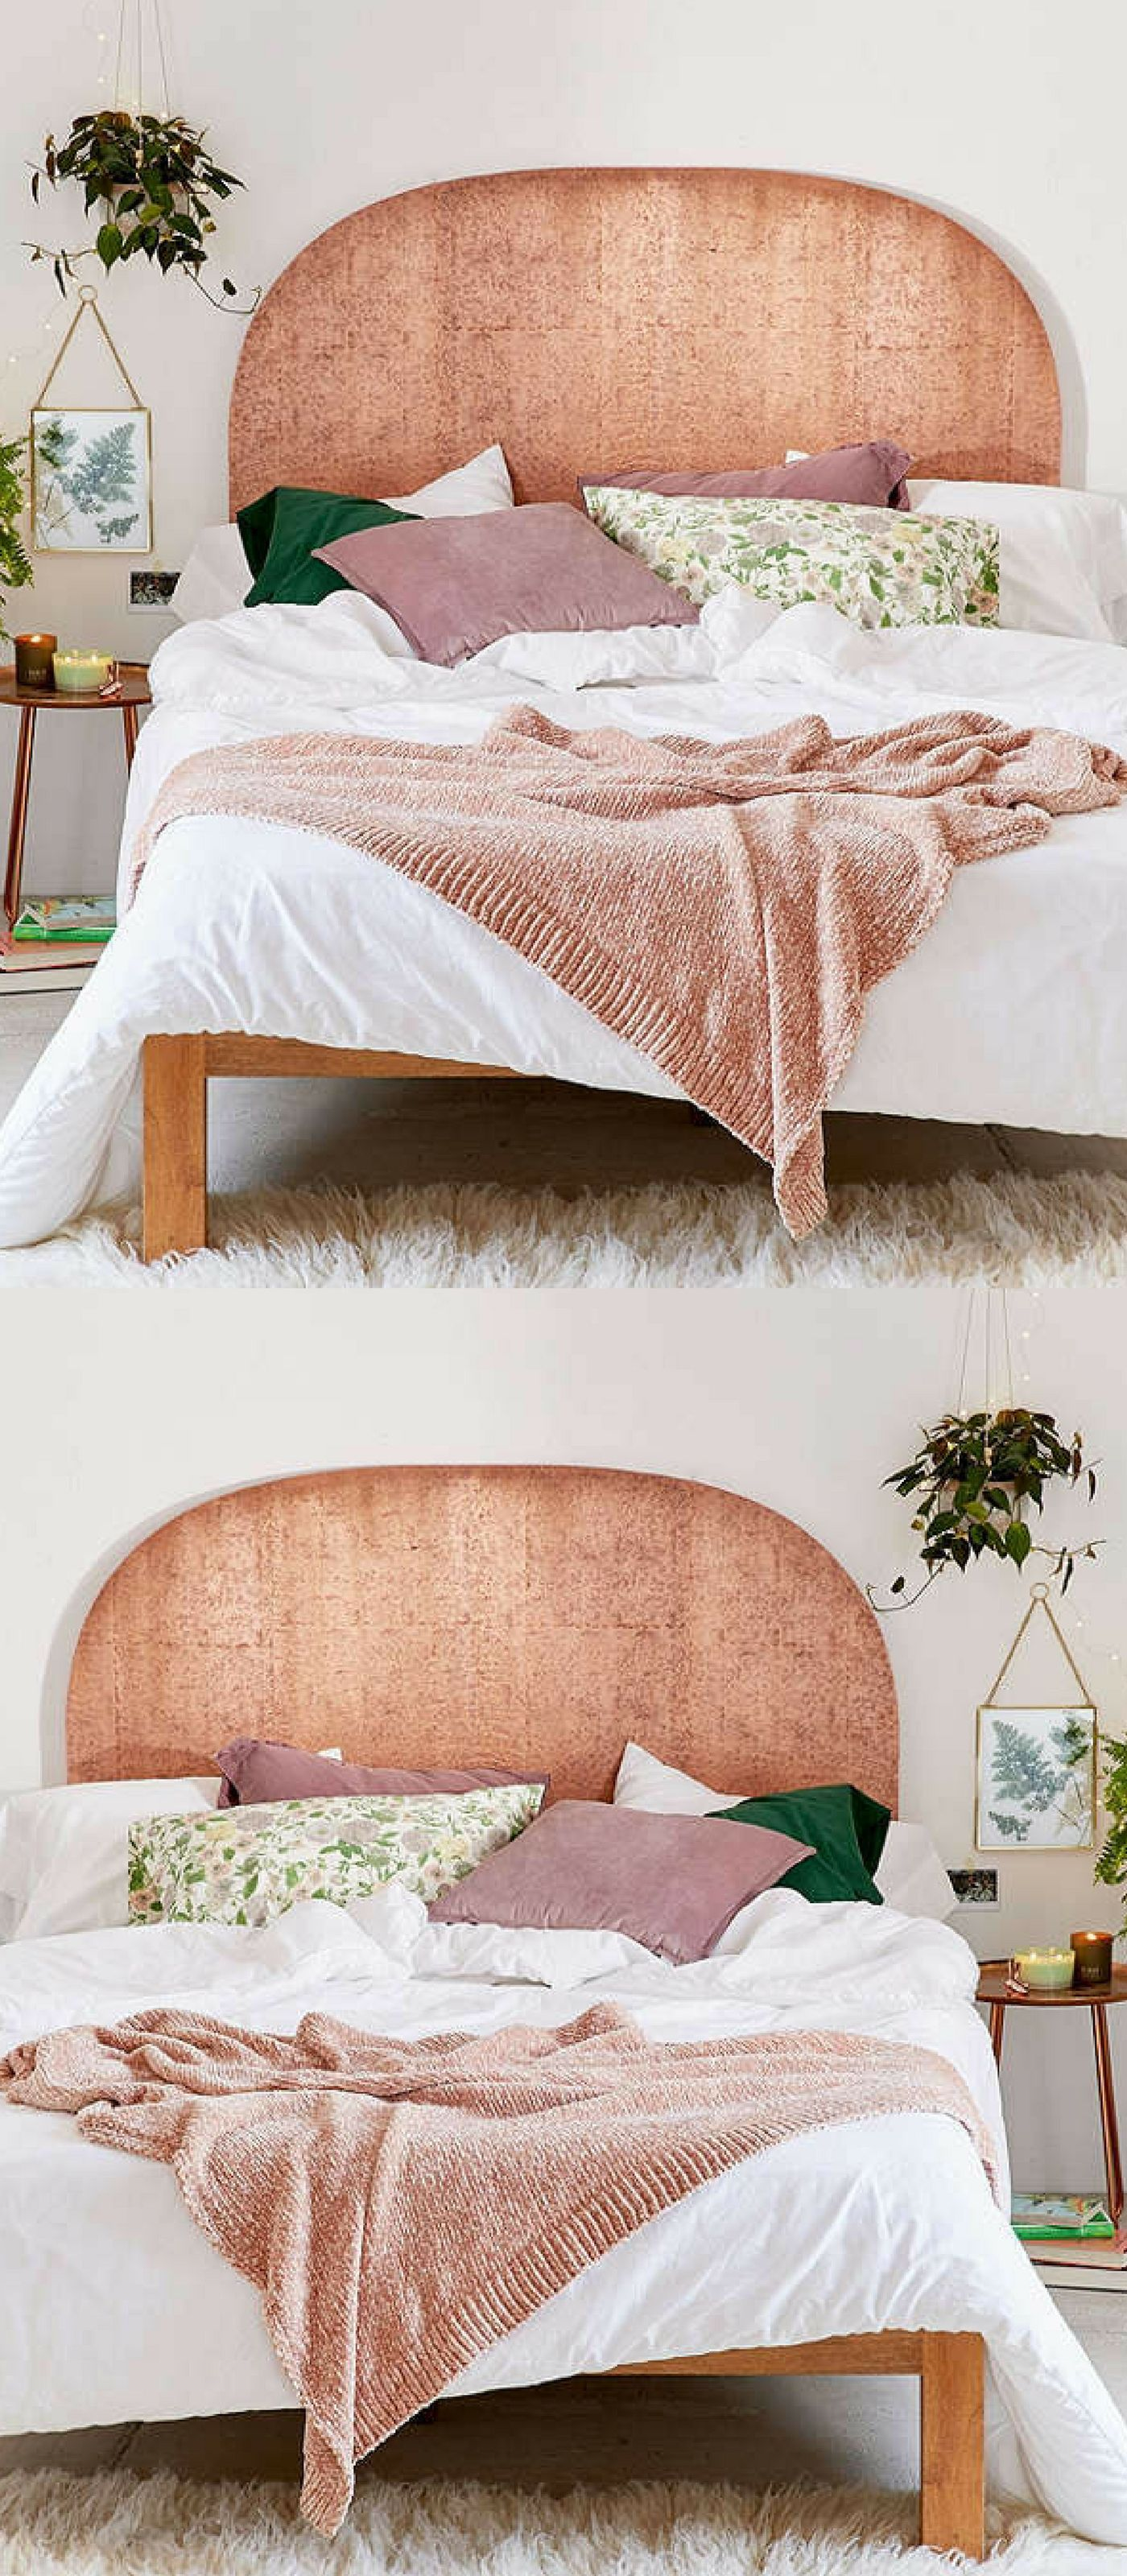 Crafted in India this rounded headboard with